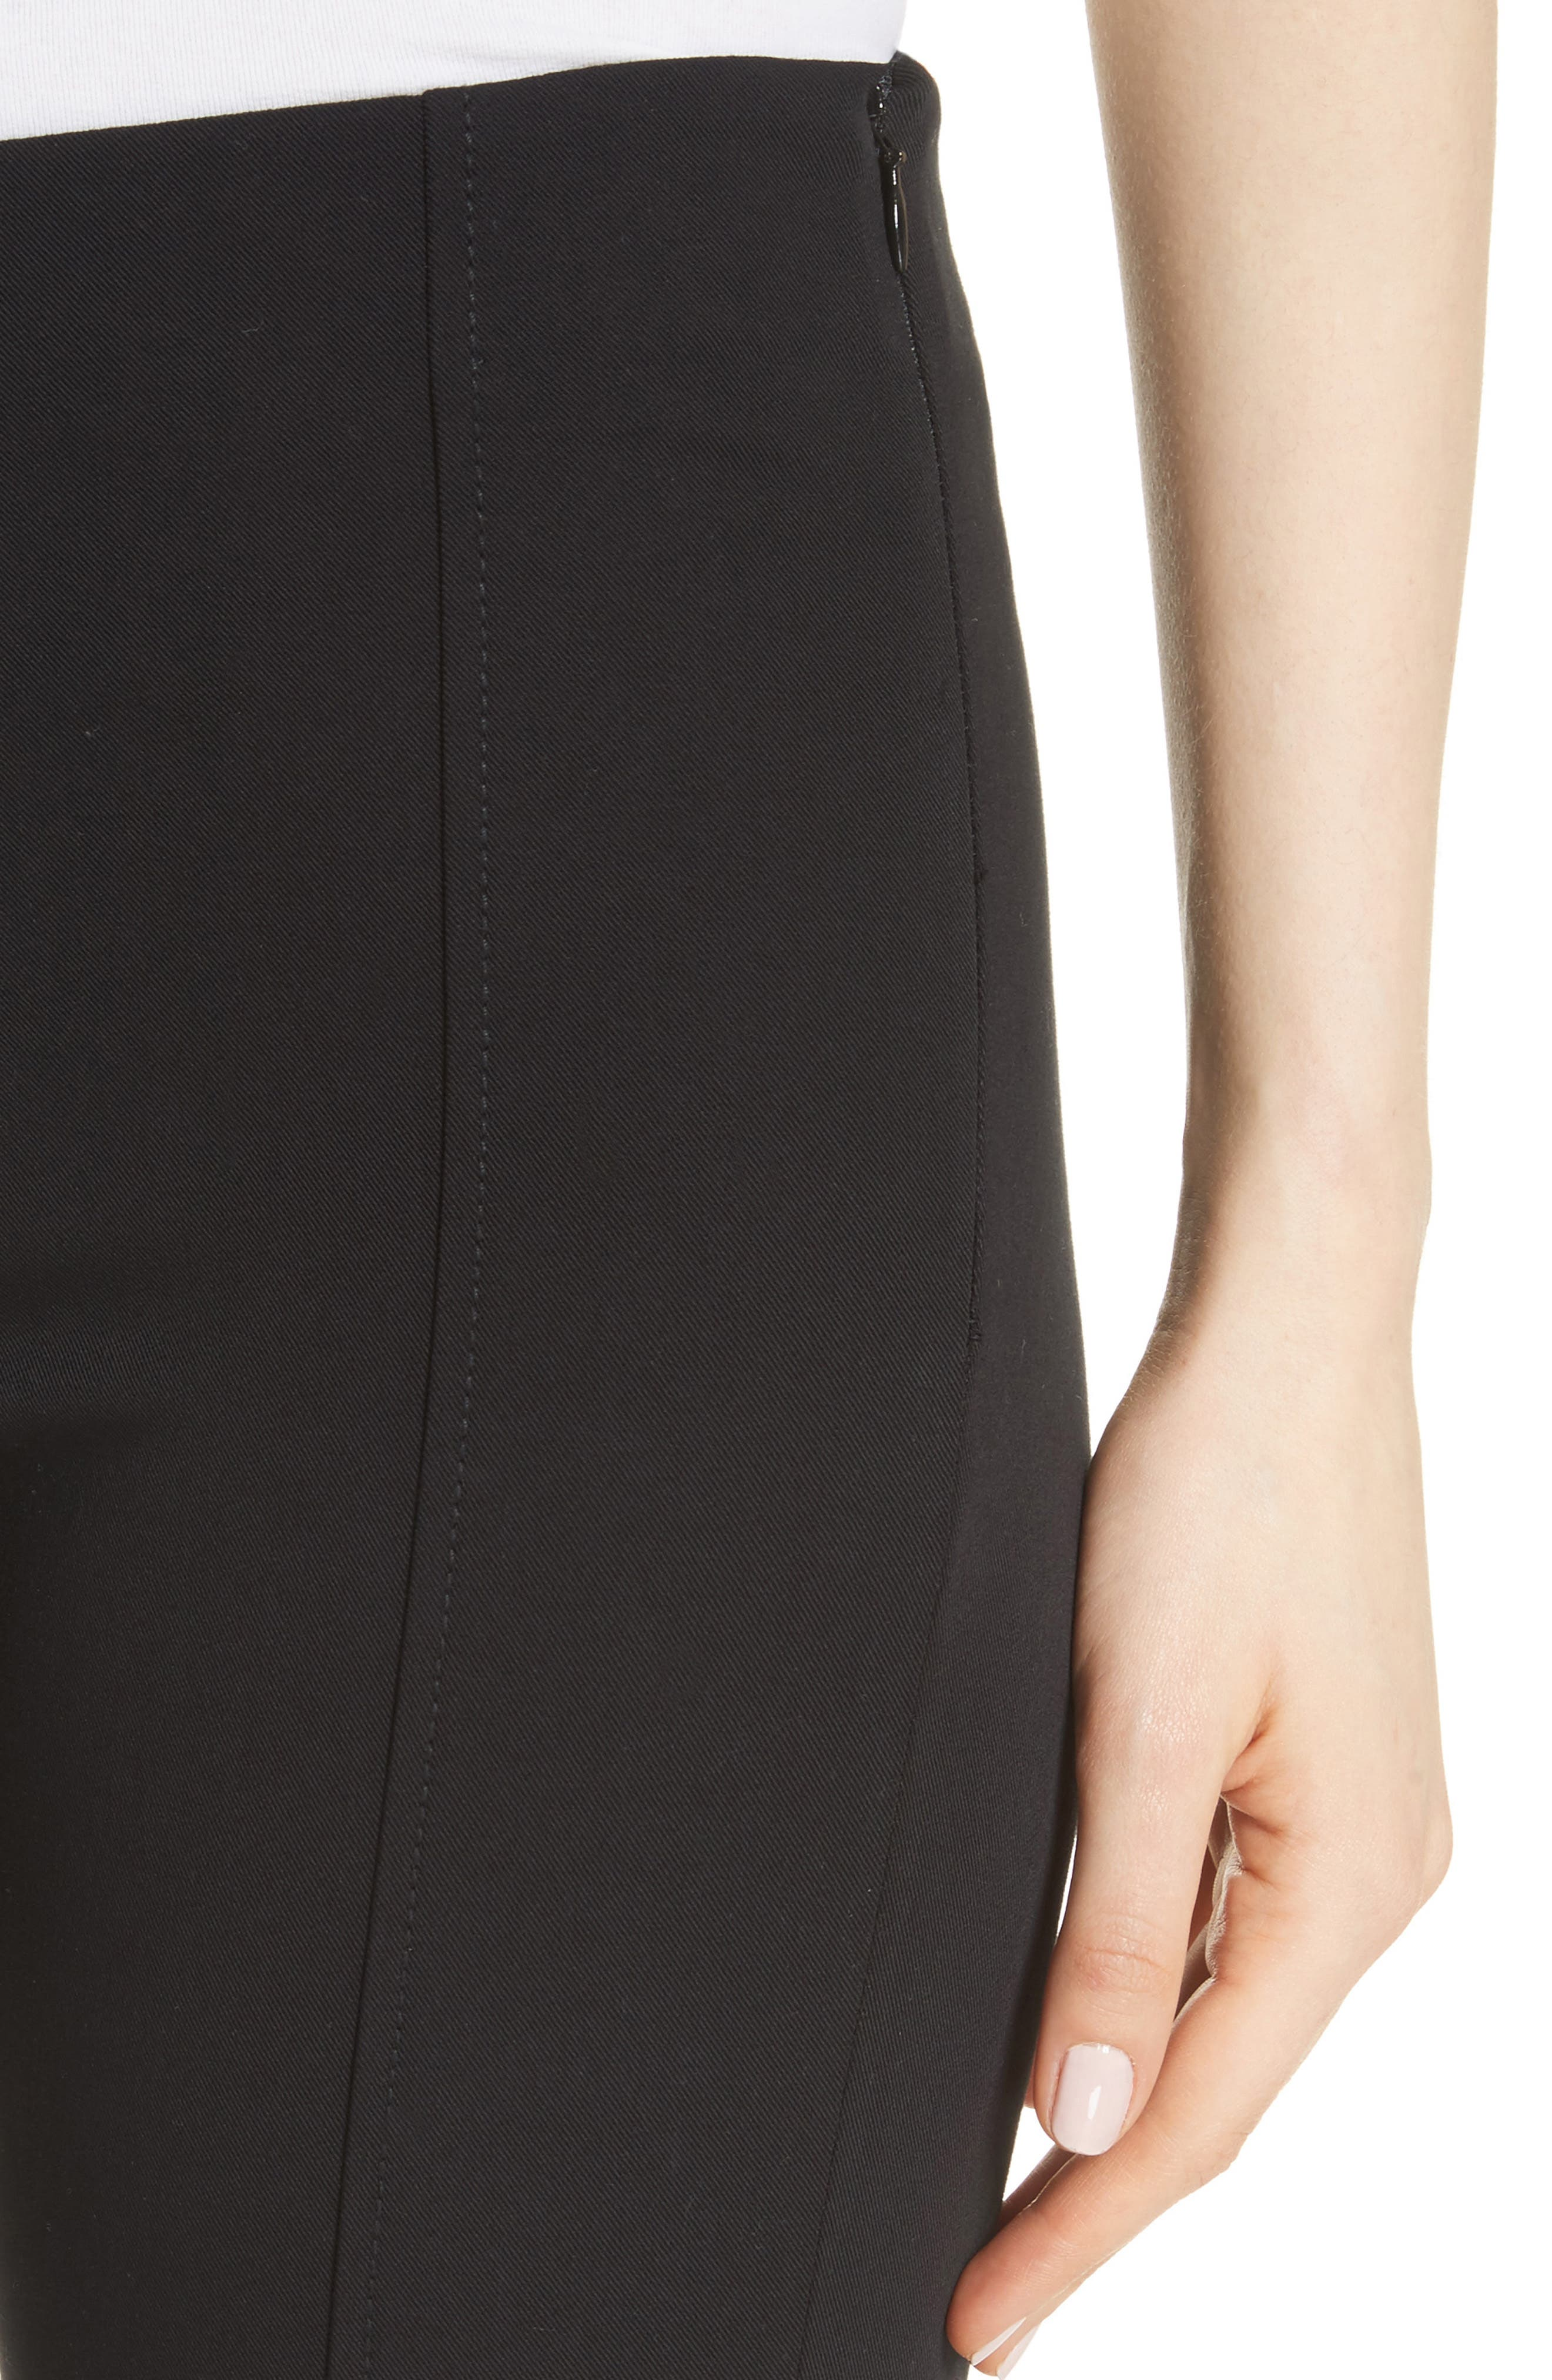 Lenny Slim Stretch Cotton Pants,                             Alternate thumbnail 4, color,                             Black